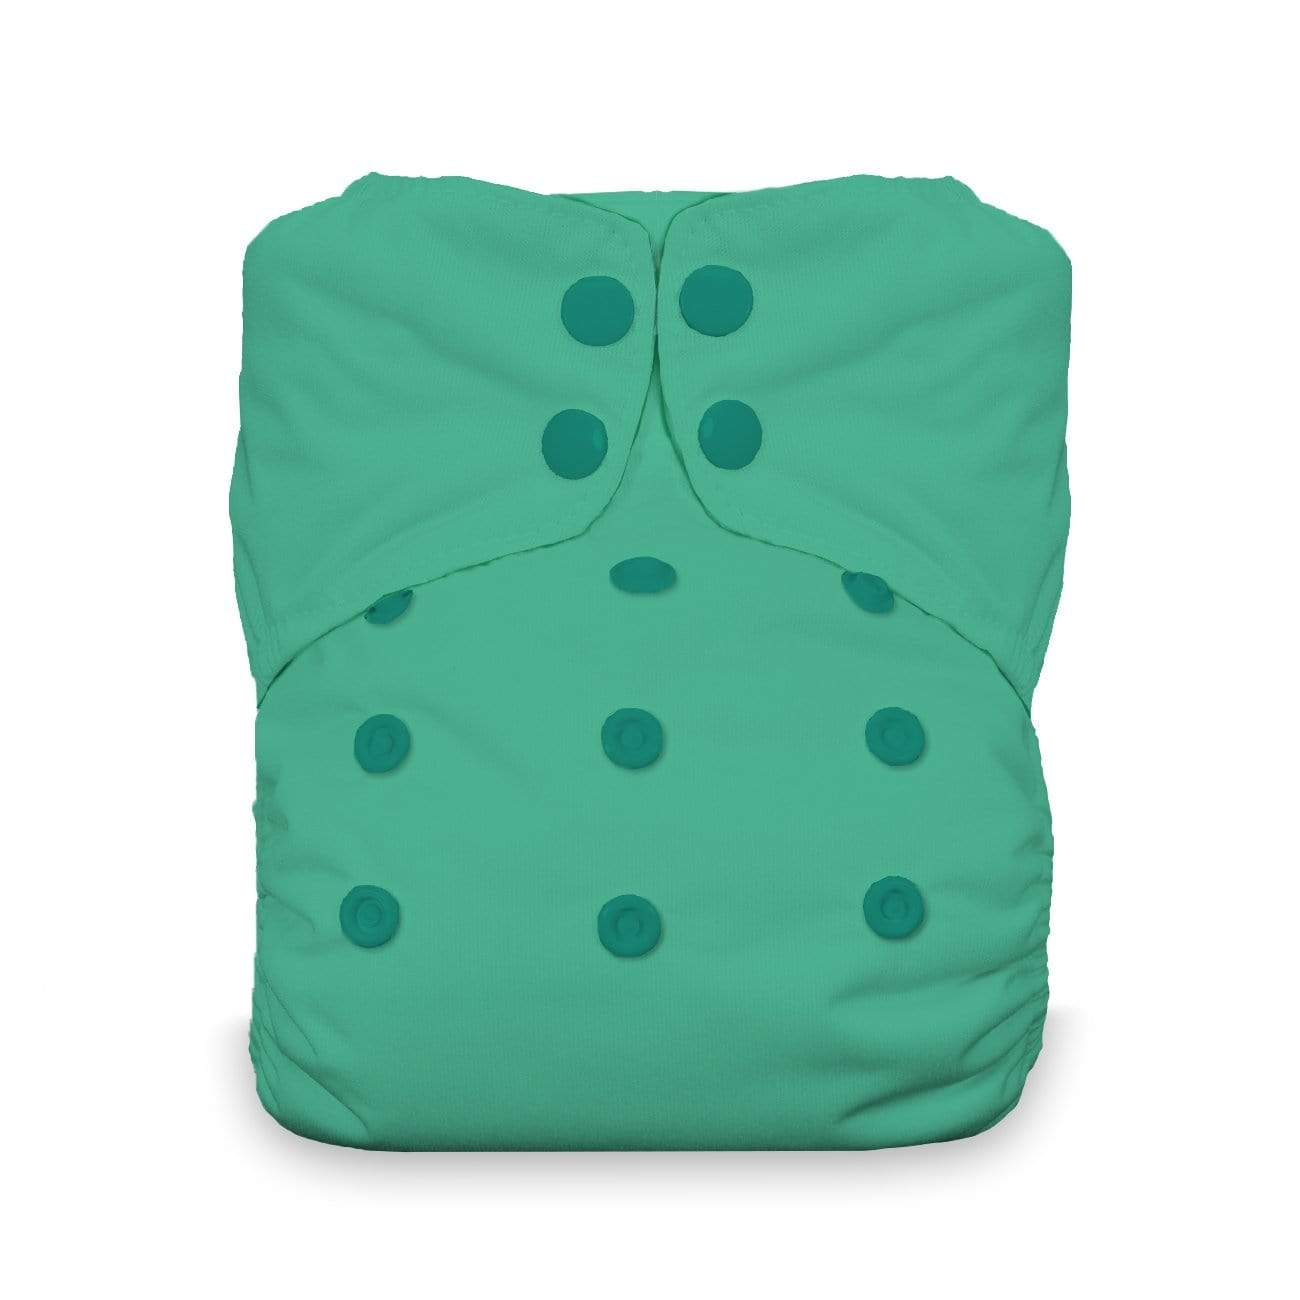 Thirsties Stay Dry Natural Snap One Size All in One Diaper - Seafoam